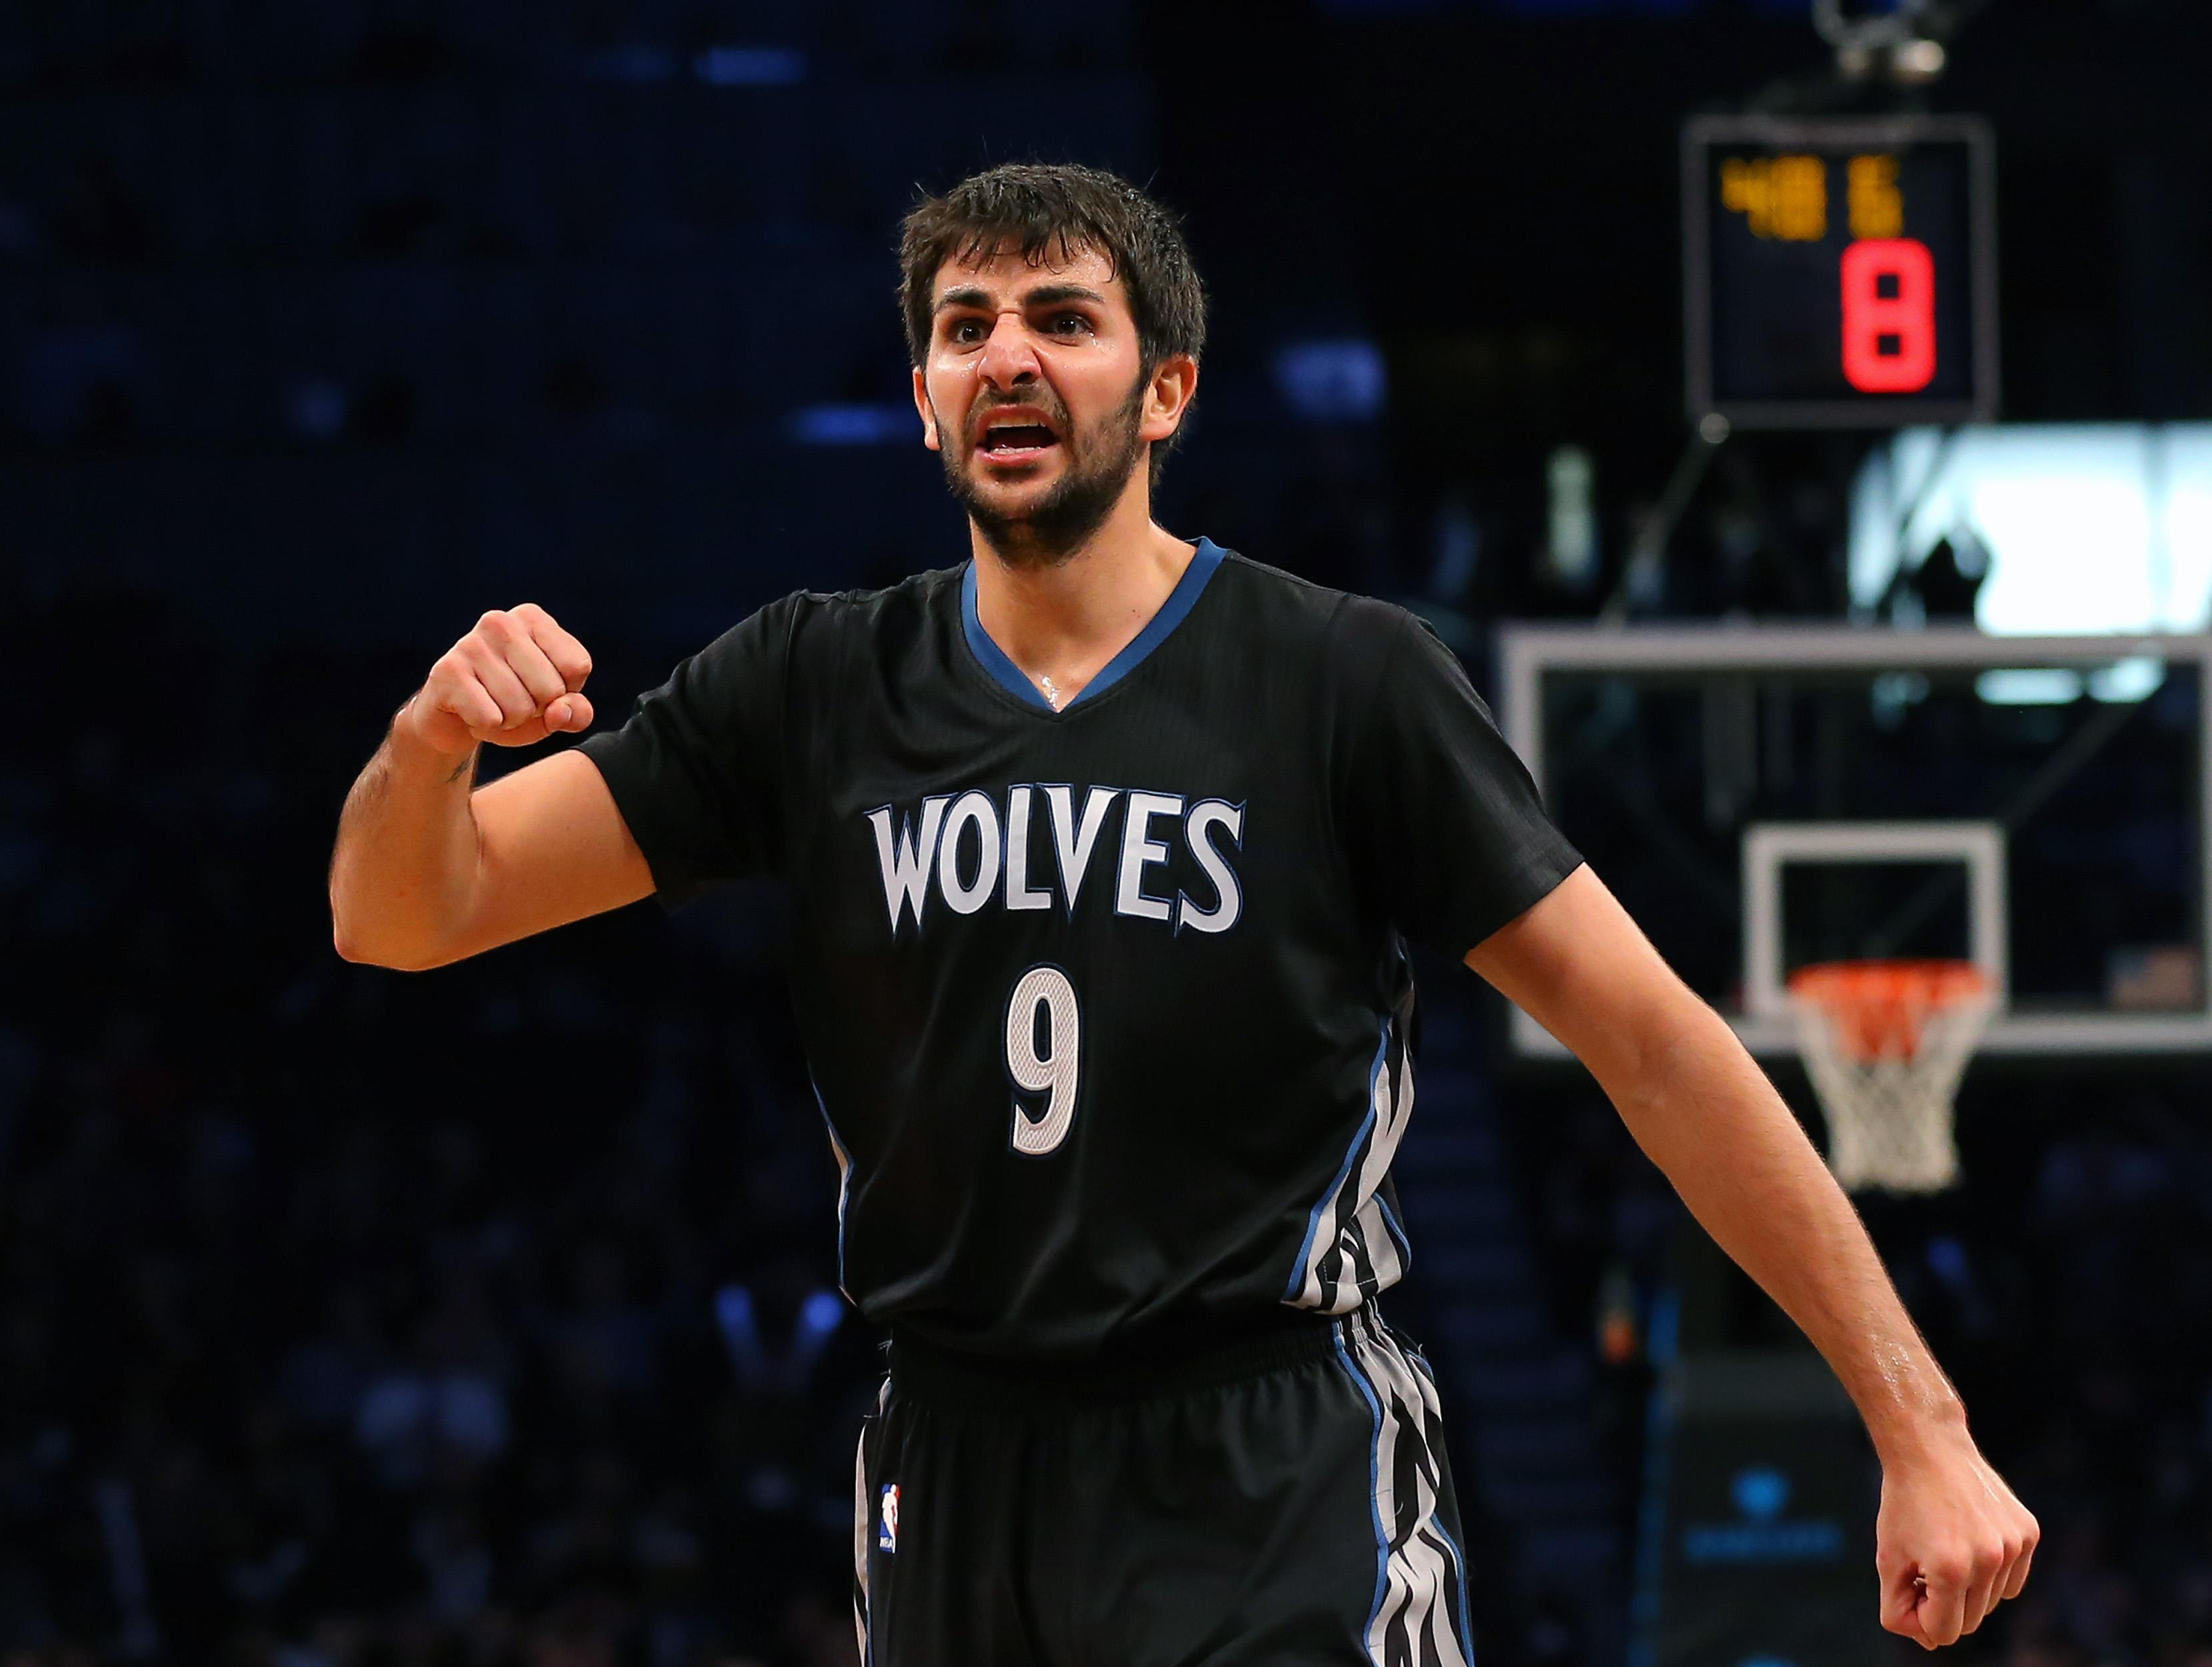 Ricky Rubio could return to Timberwolves in 2-3 weeks